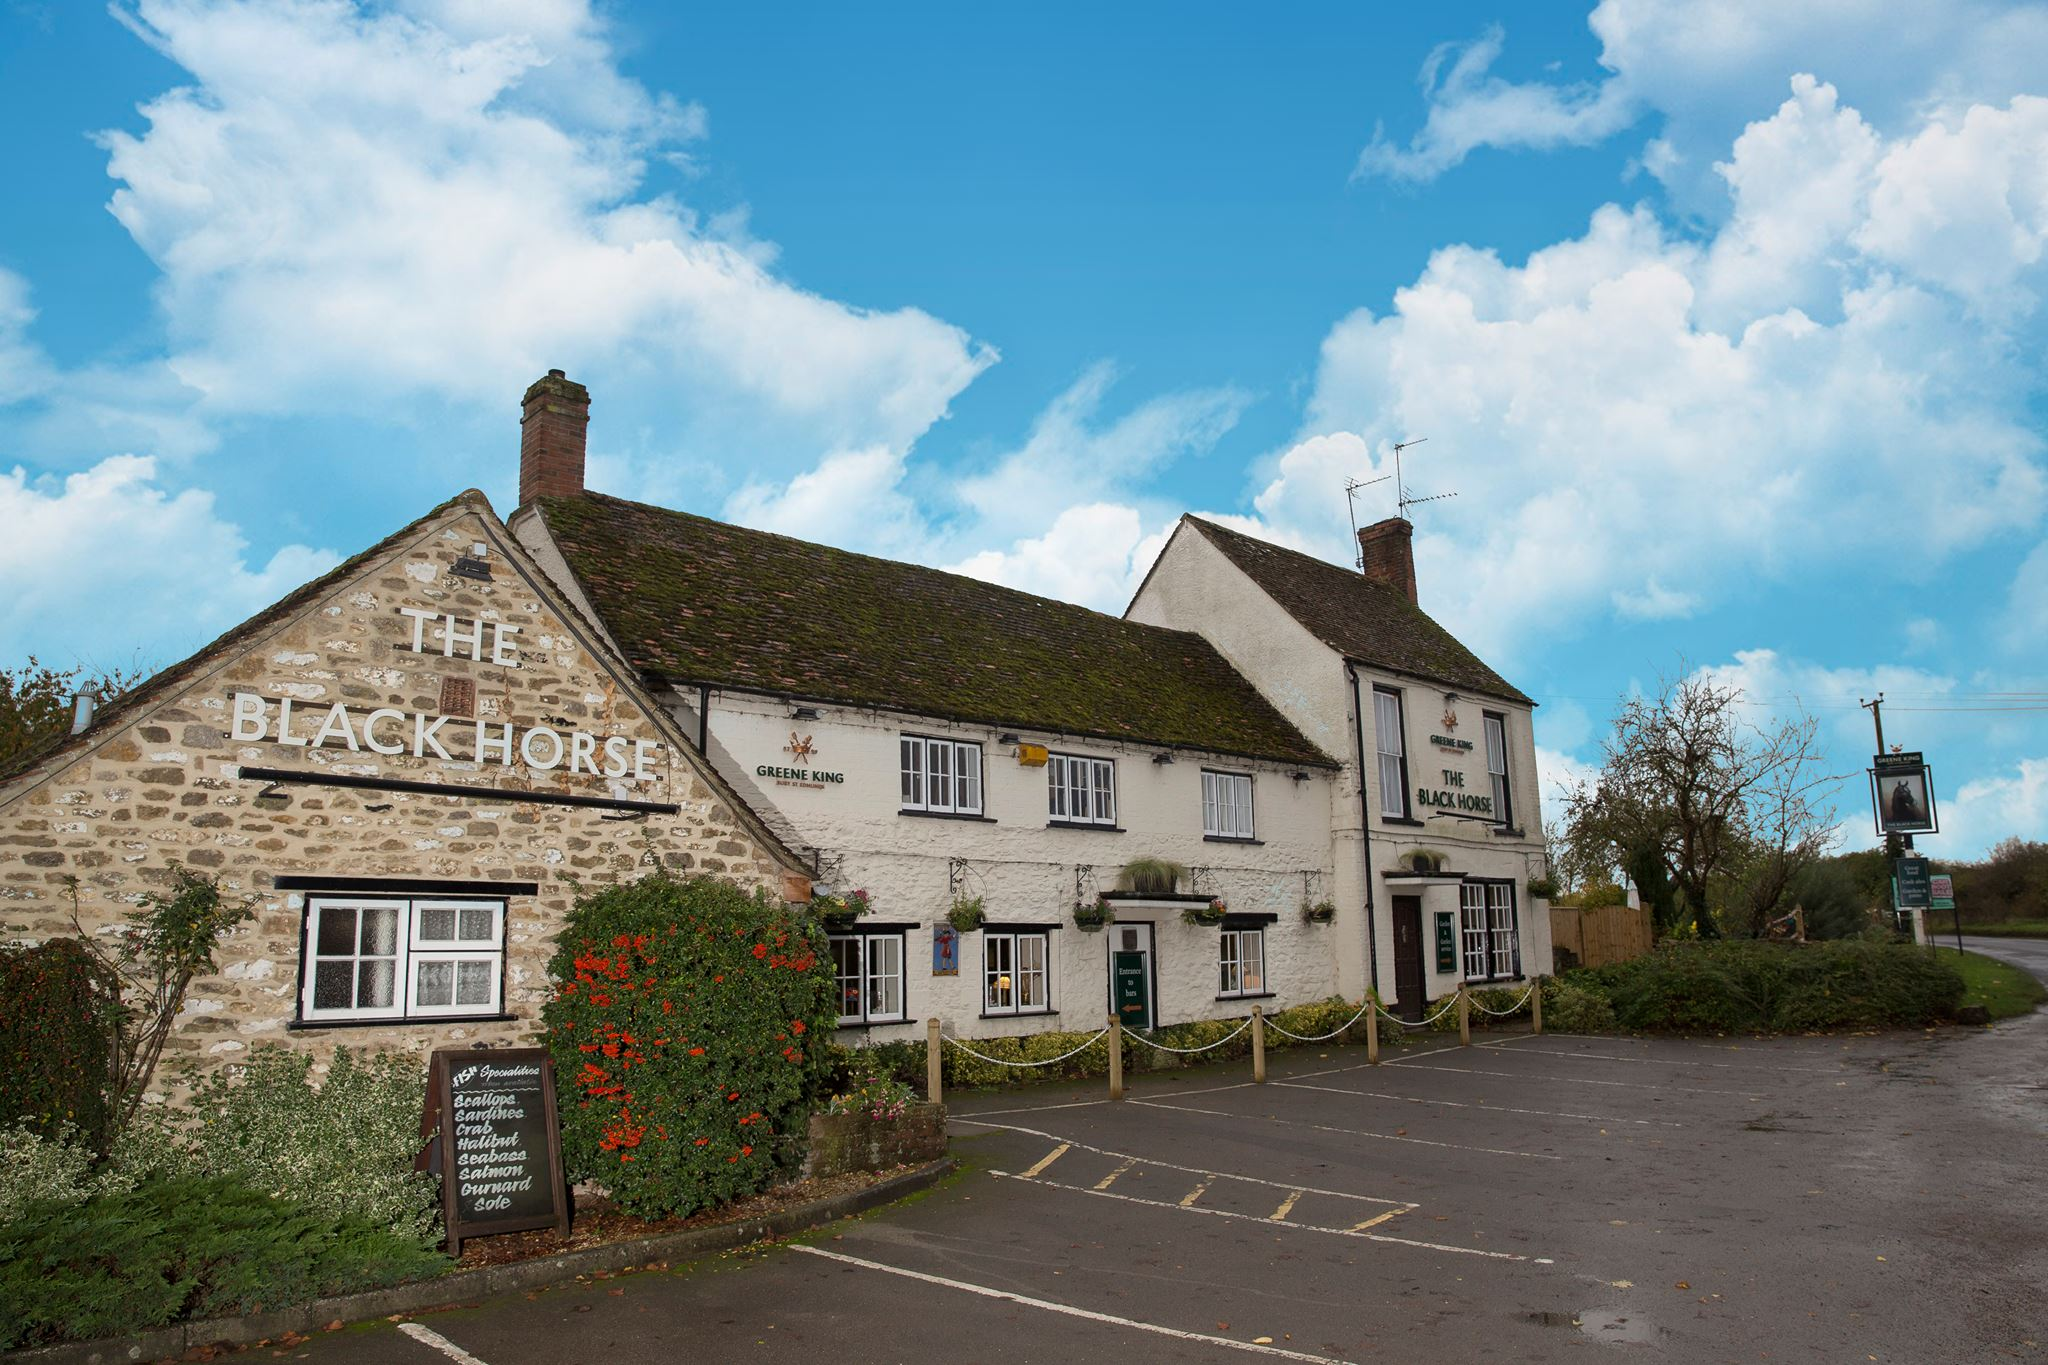 The Black Horse, Gozzards Ford